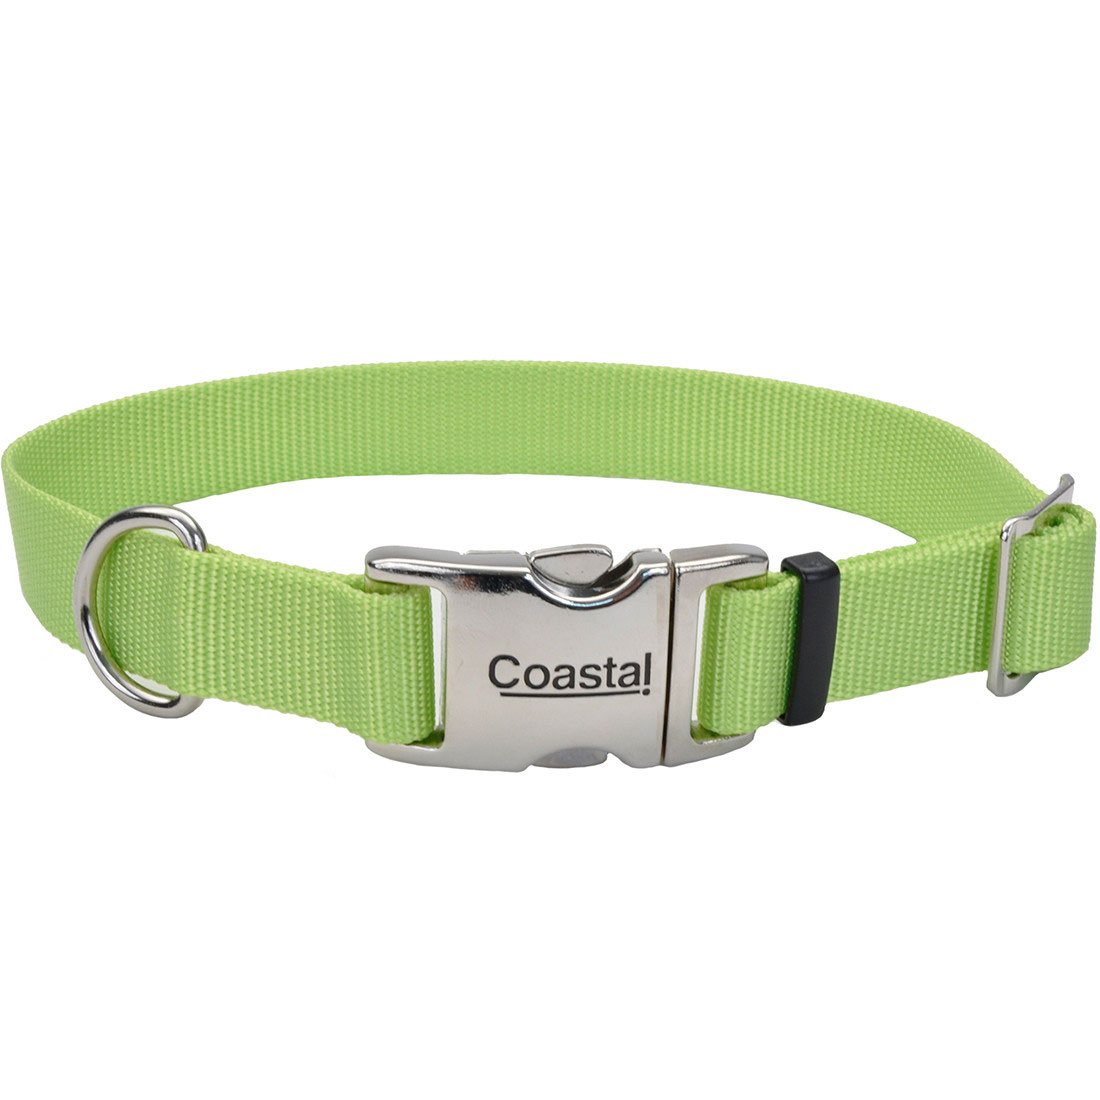 Coastal Adjustable Collar with Metal Buckle for Dogs, Lime Image